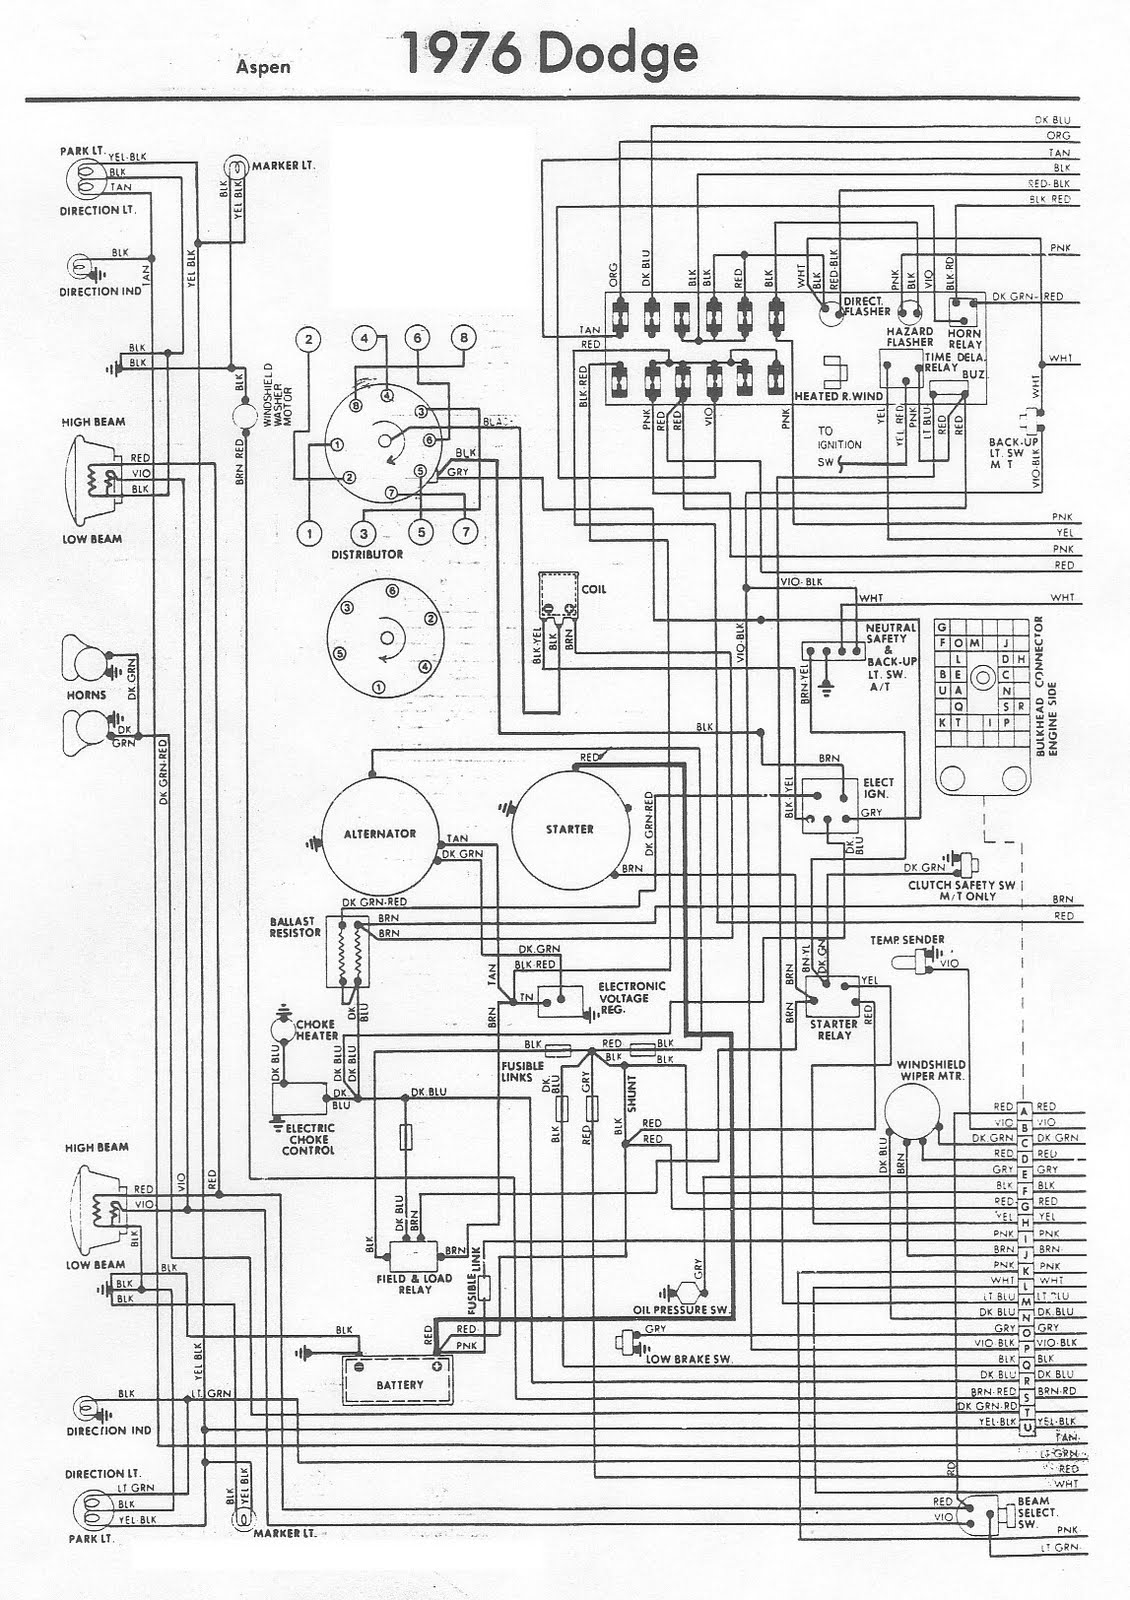 76_Dodge_Aspen_Engine_wiring dodge wiring diagrams free 1997 dodge caravan wiring diagram 2004 polaris sportsman 600 wiring diagram at reclaimingppi.co